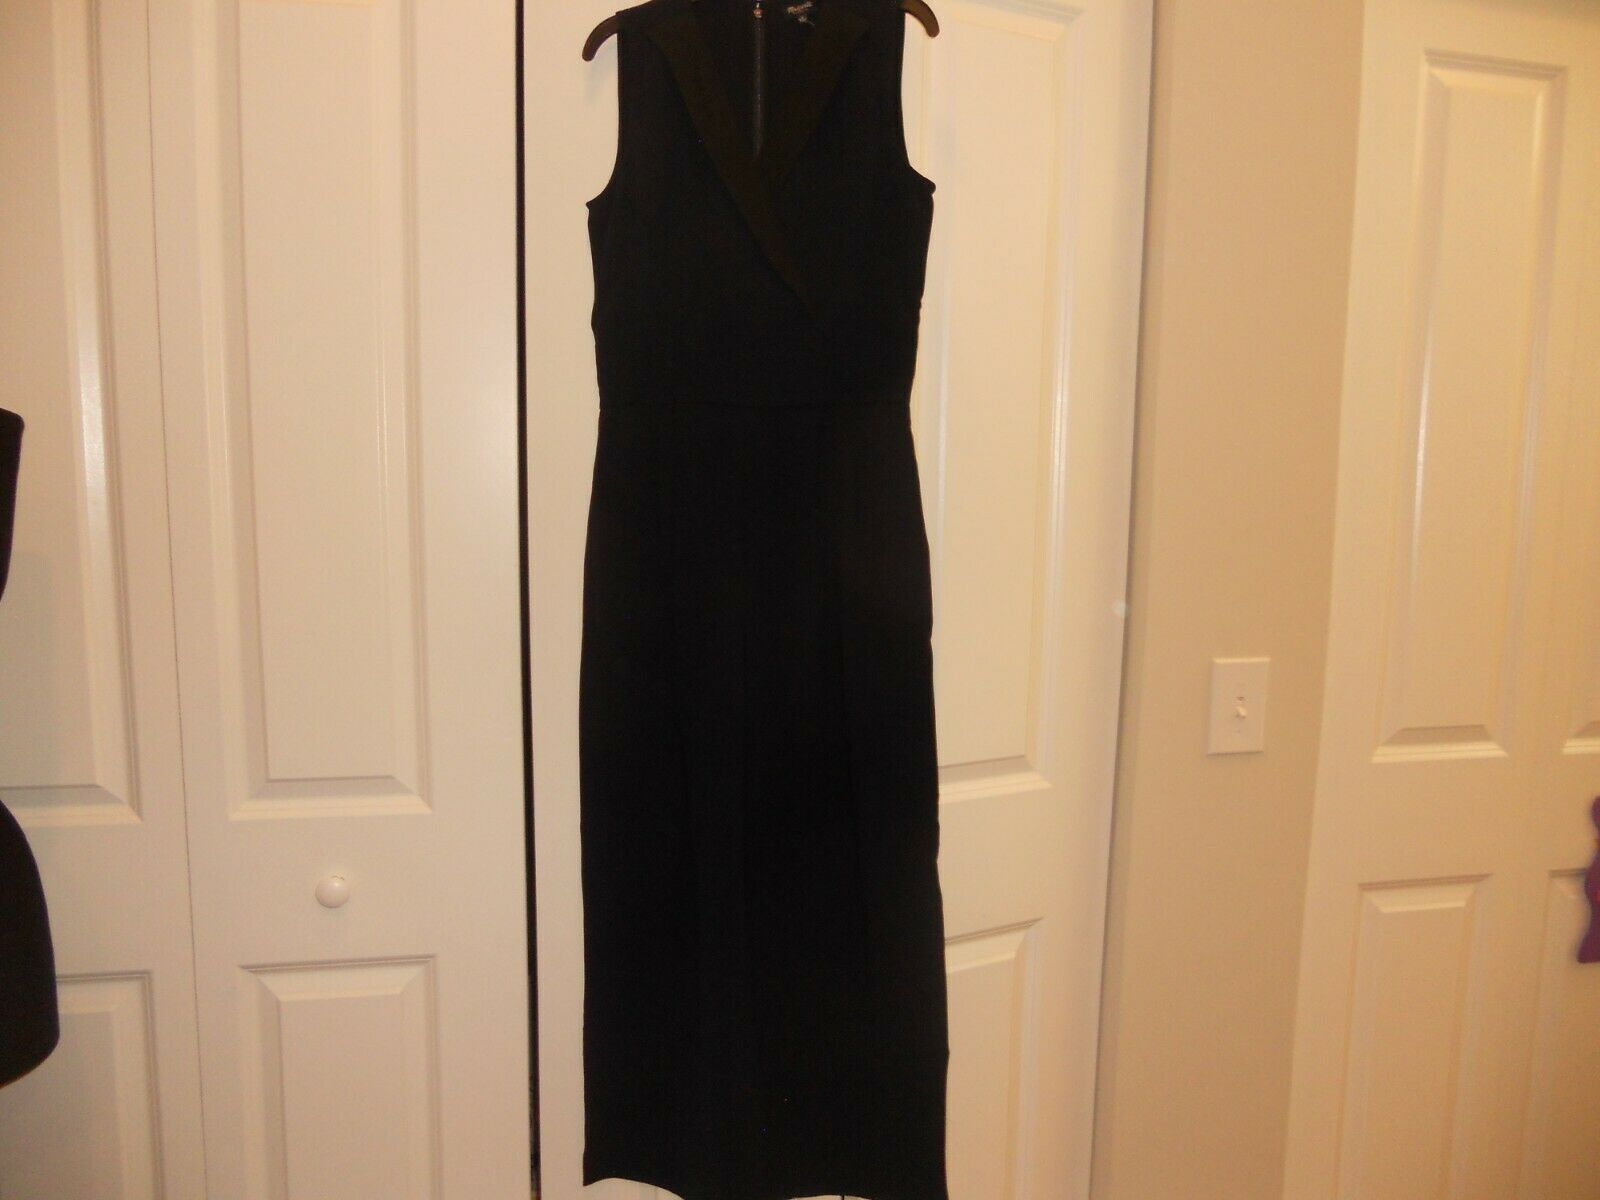 NWT MADEWELL 1937 TUX JUMPSUIT SLEEVELESS IN NIGHT VISION SIZES 0 & 14